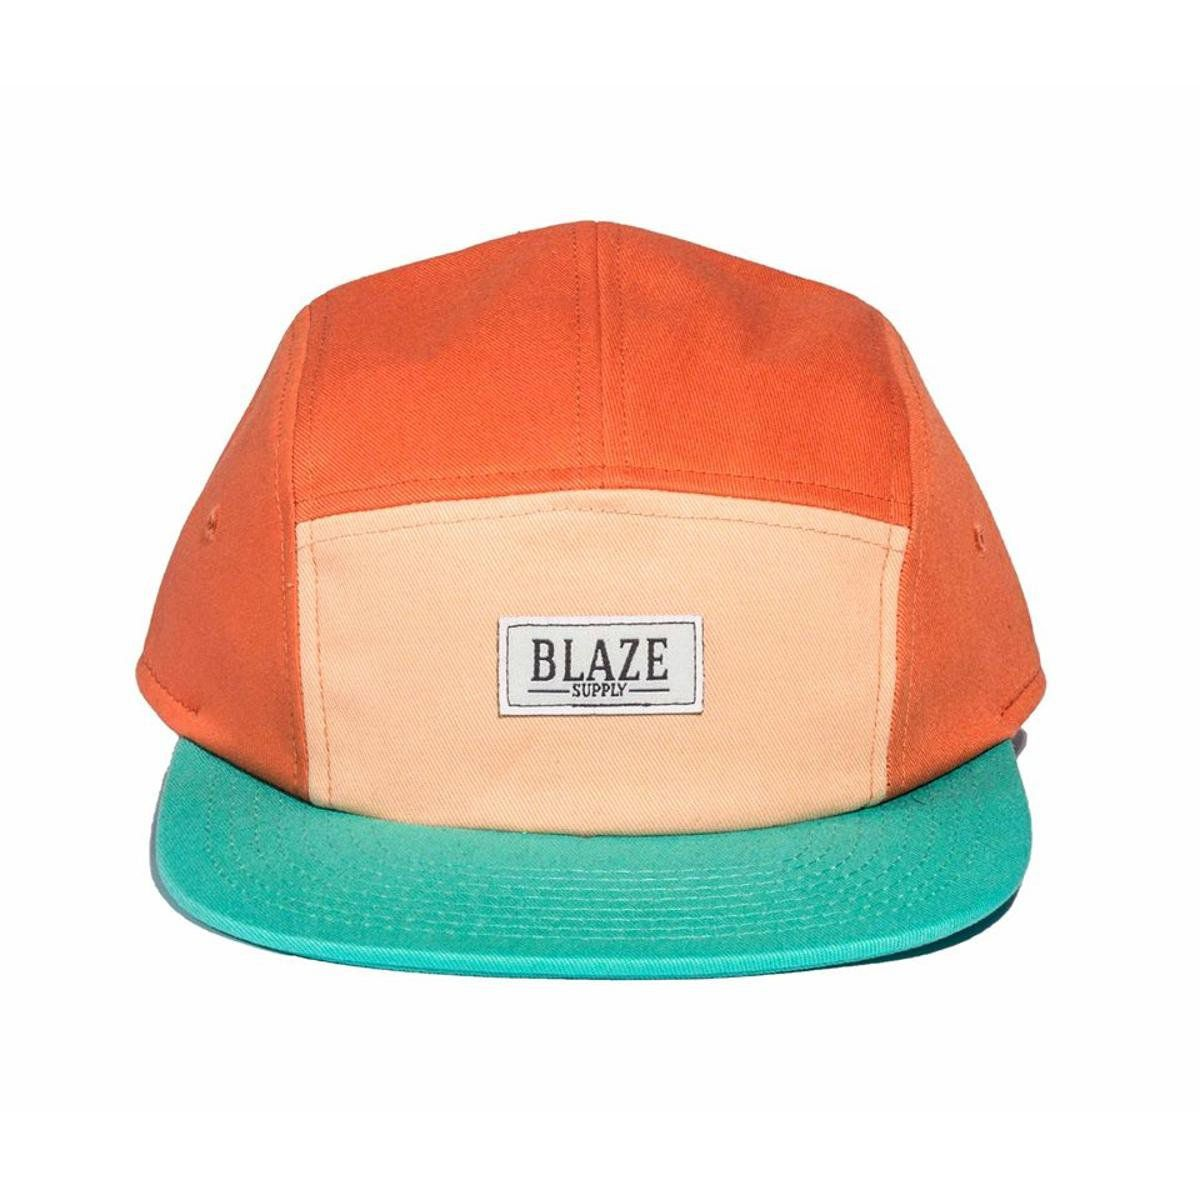 Boné Blaze Supply Five panel Strapback Laranja